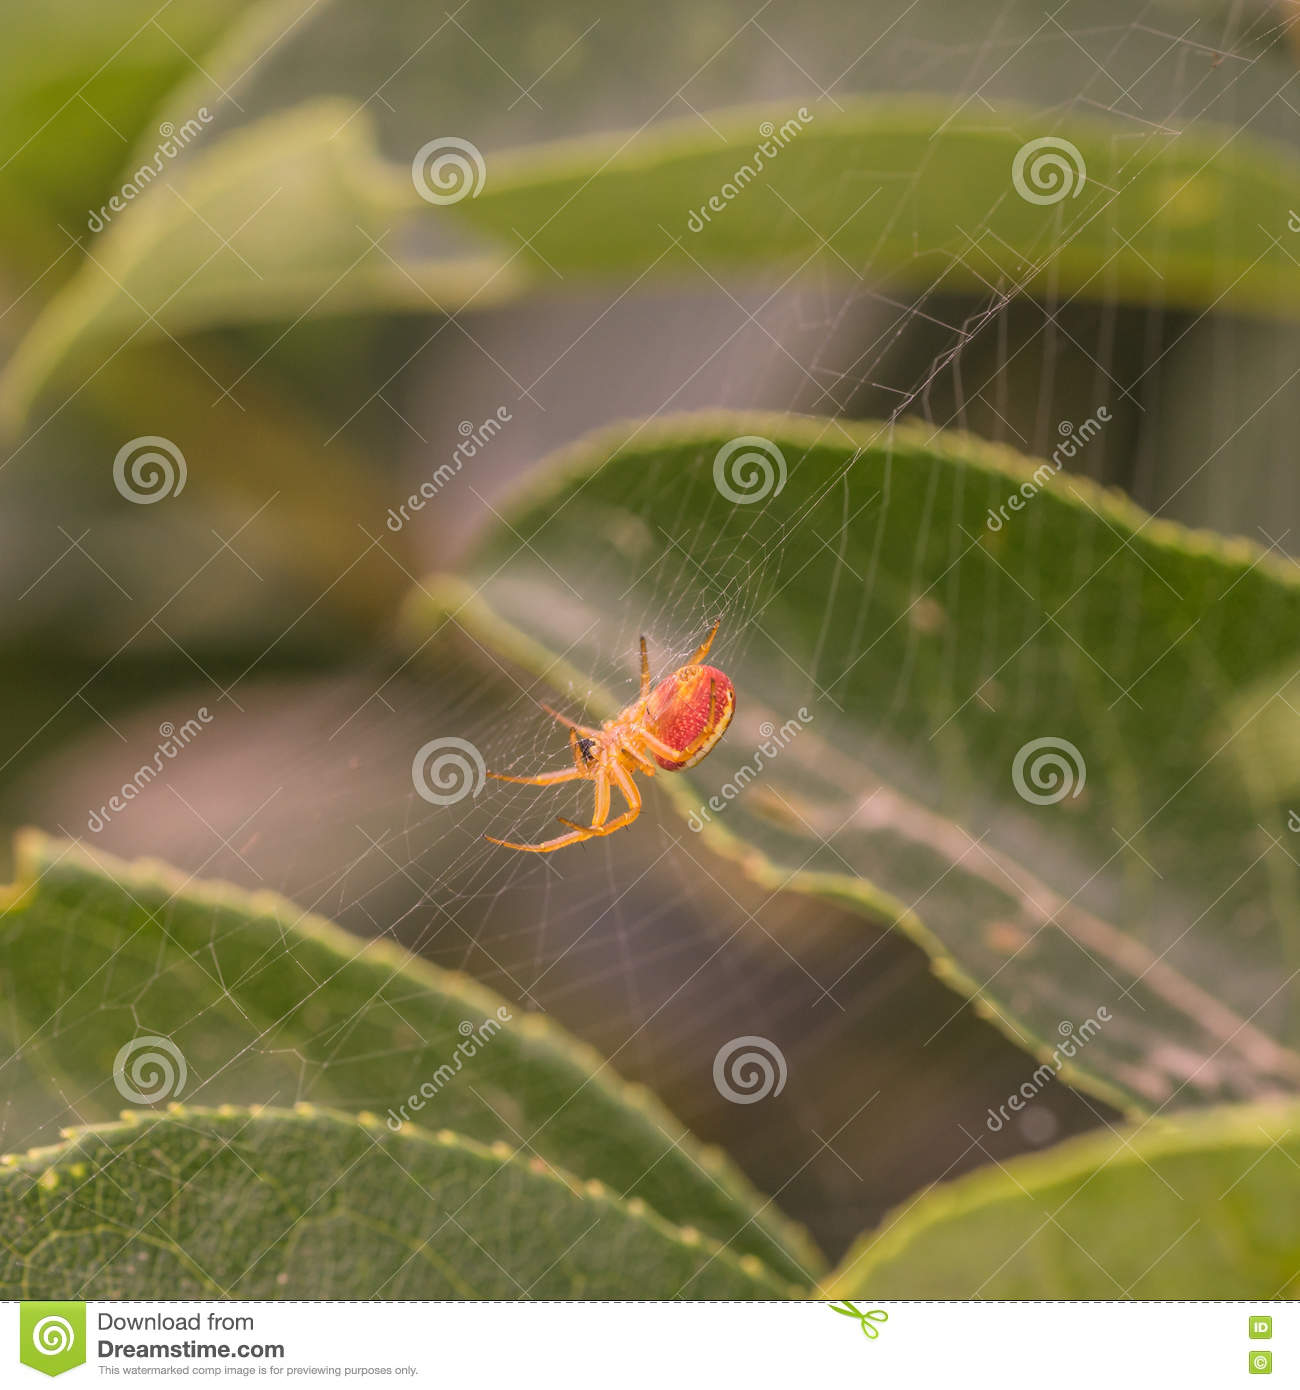 Side View of a Spider in Web